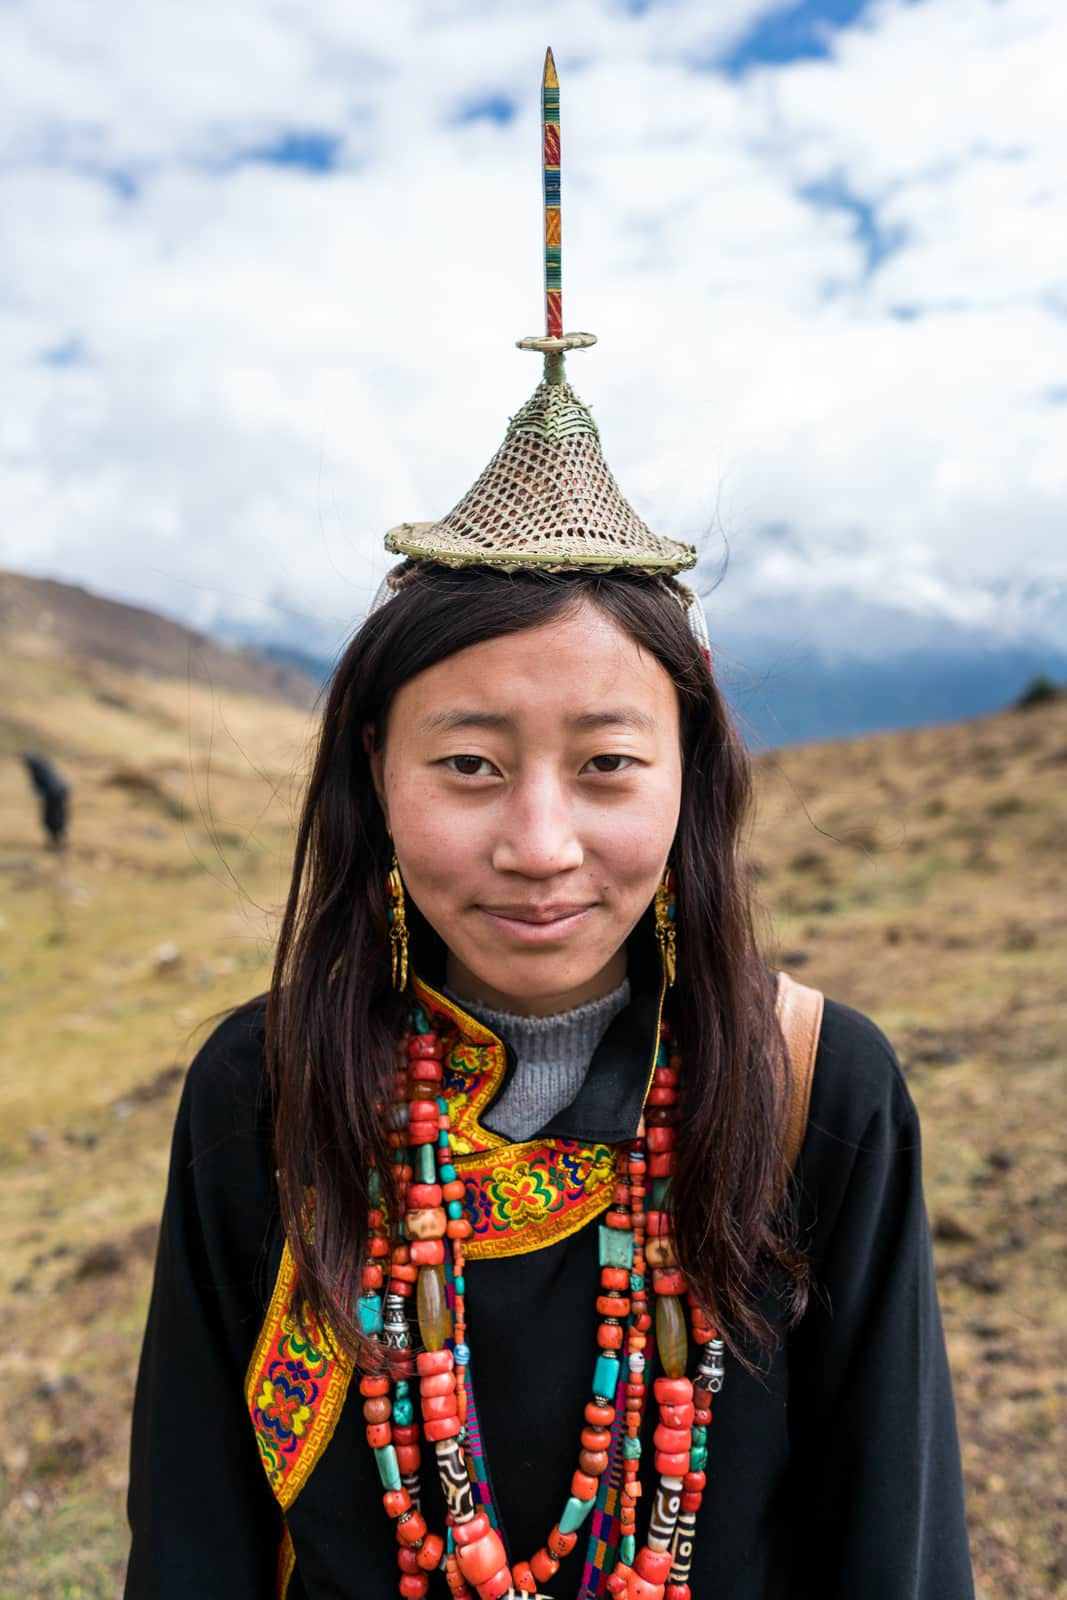 Portrait of a Layap girl in traditional headdress, dress, and beads at the 2017 Royal Highlander Festival in Laya, Bhutan. The perfect off the beaten track adventure in Bhutan!